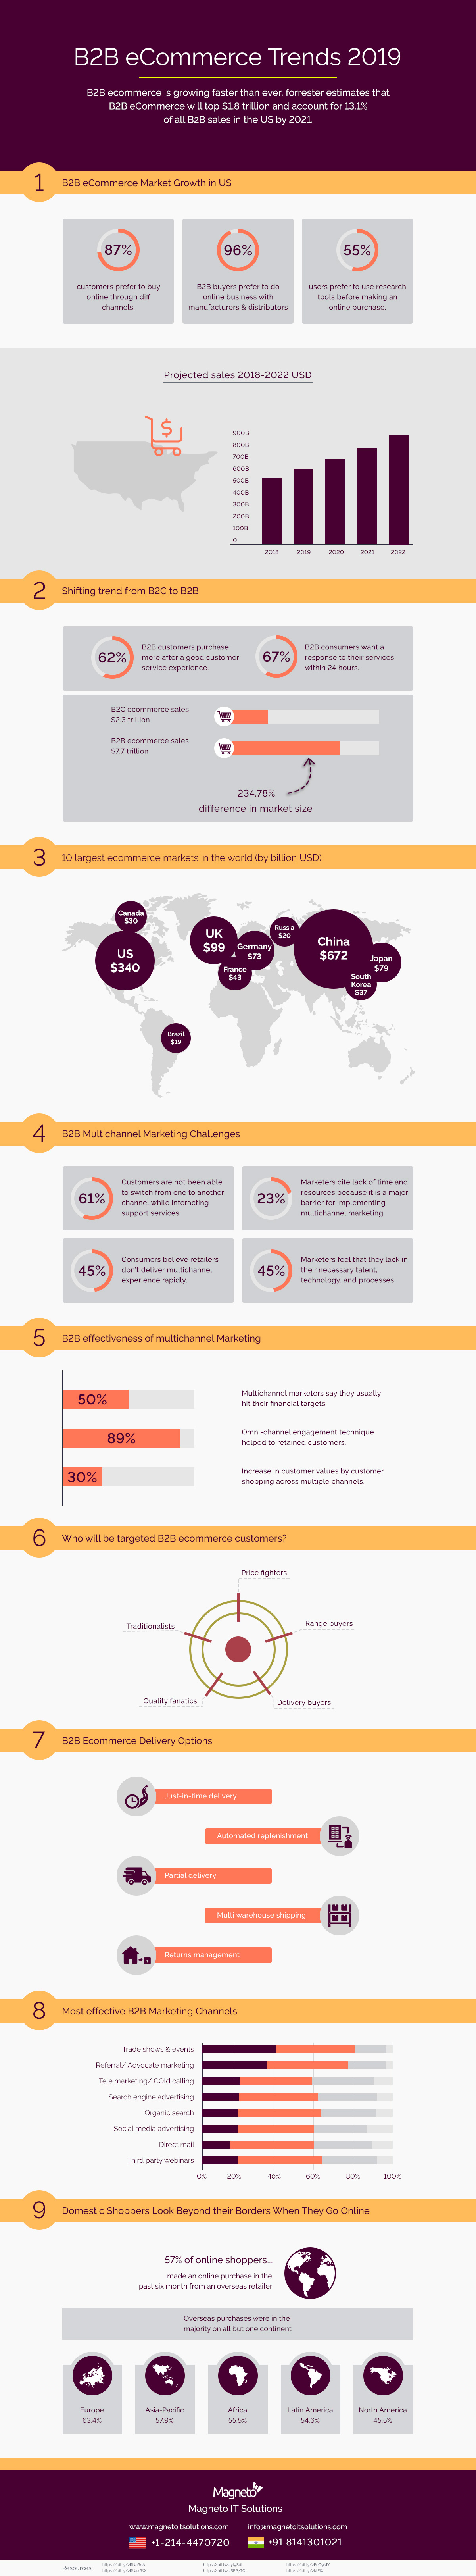 B2B E-Commerce Trends 2019 – Infographic With Statistics (Updated)